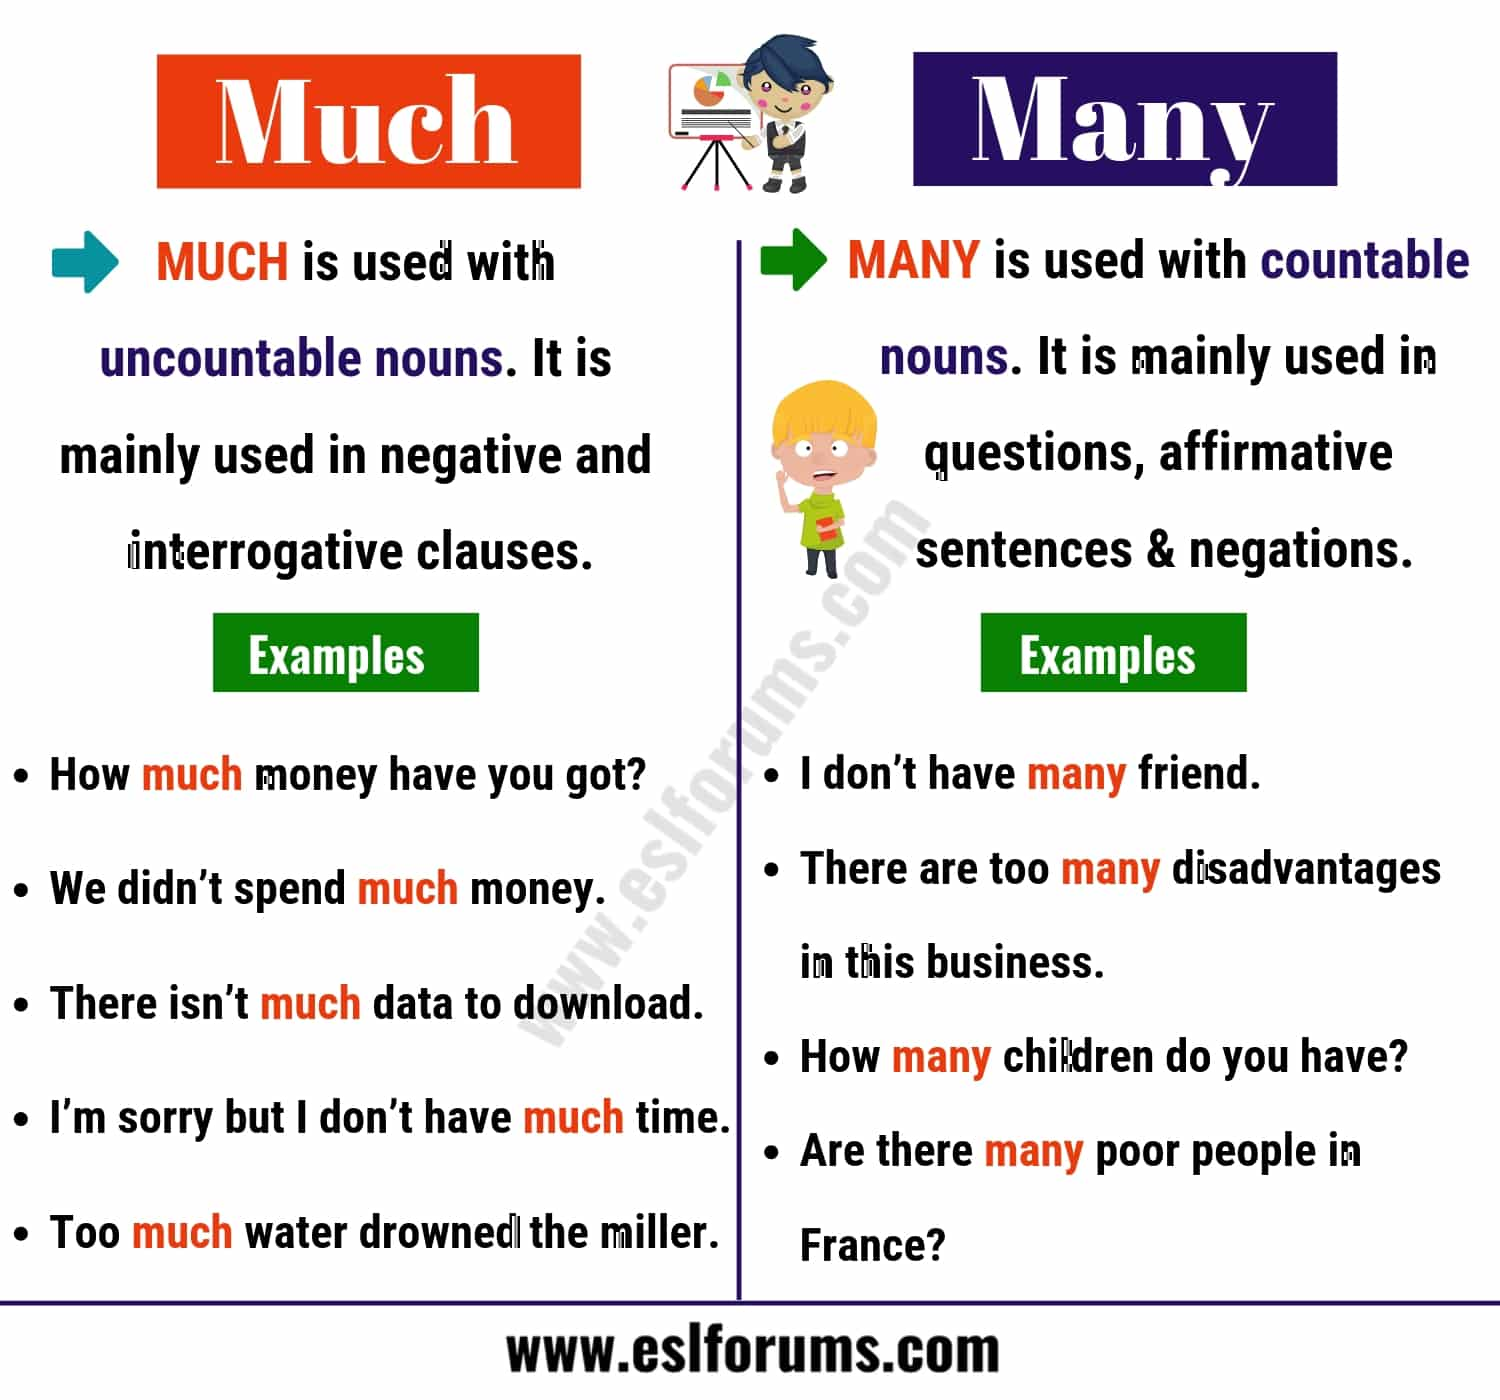 MUCH vs MANY: What Are The Differences between Them?